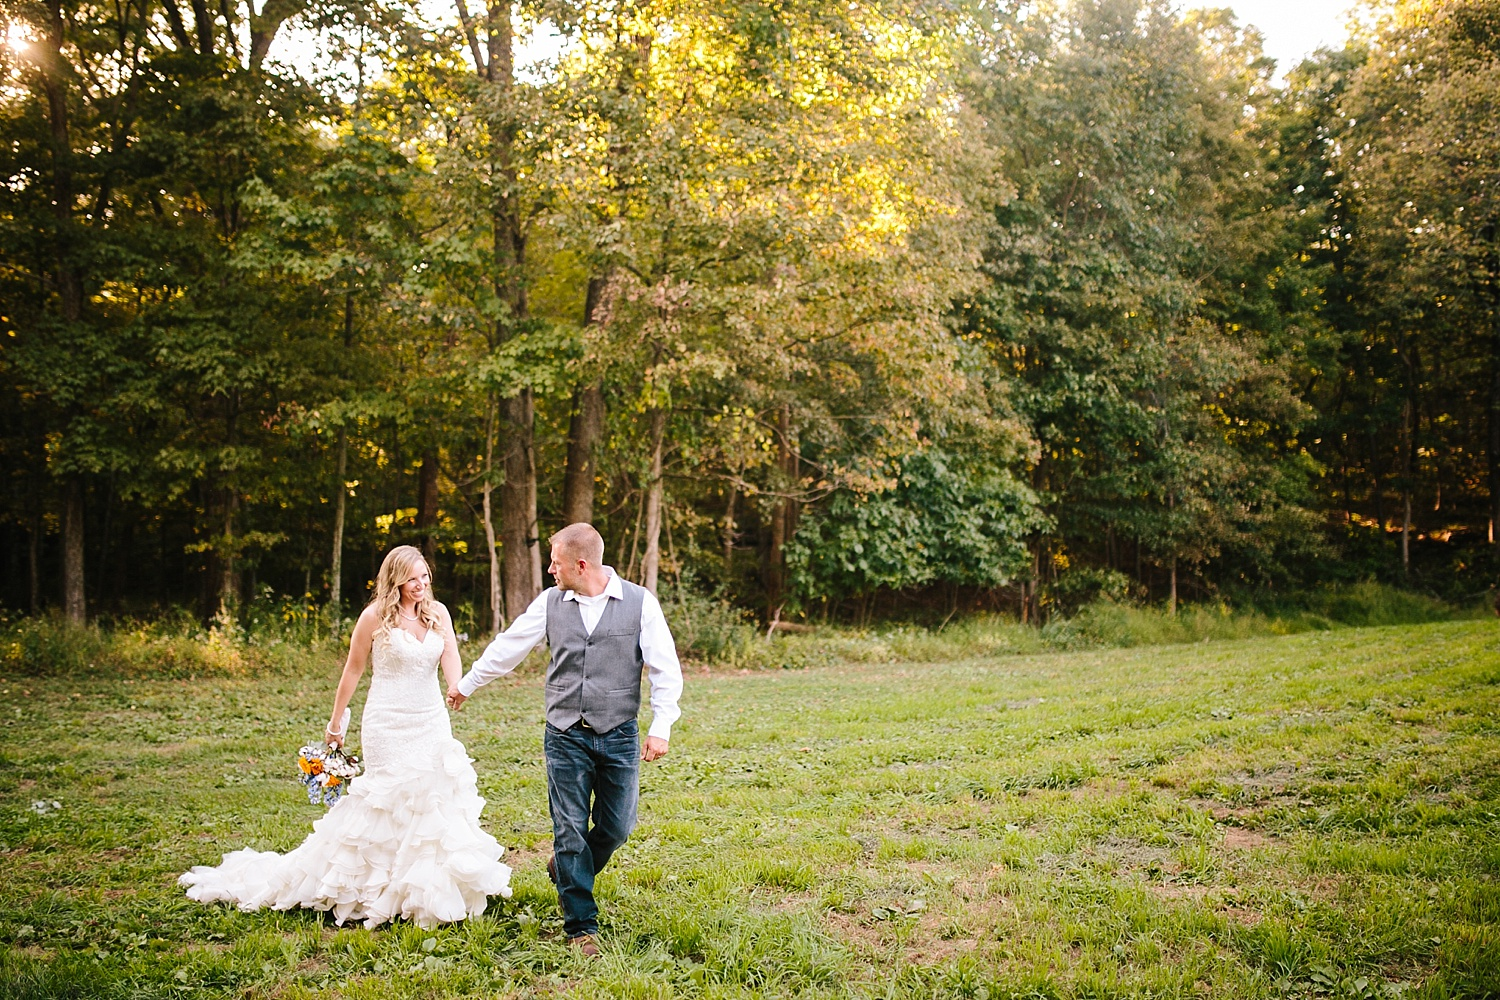 jennyryan_newbeginnings_farmstead_upstatenewyork_wedding_image096.jpg